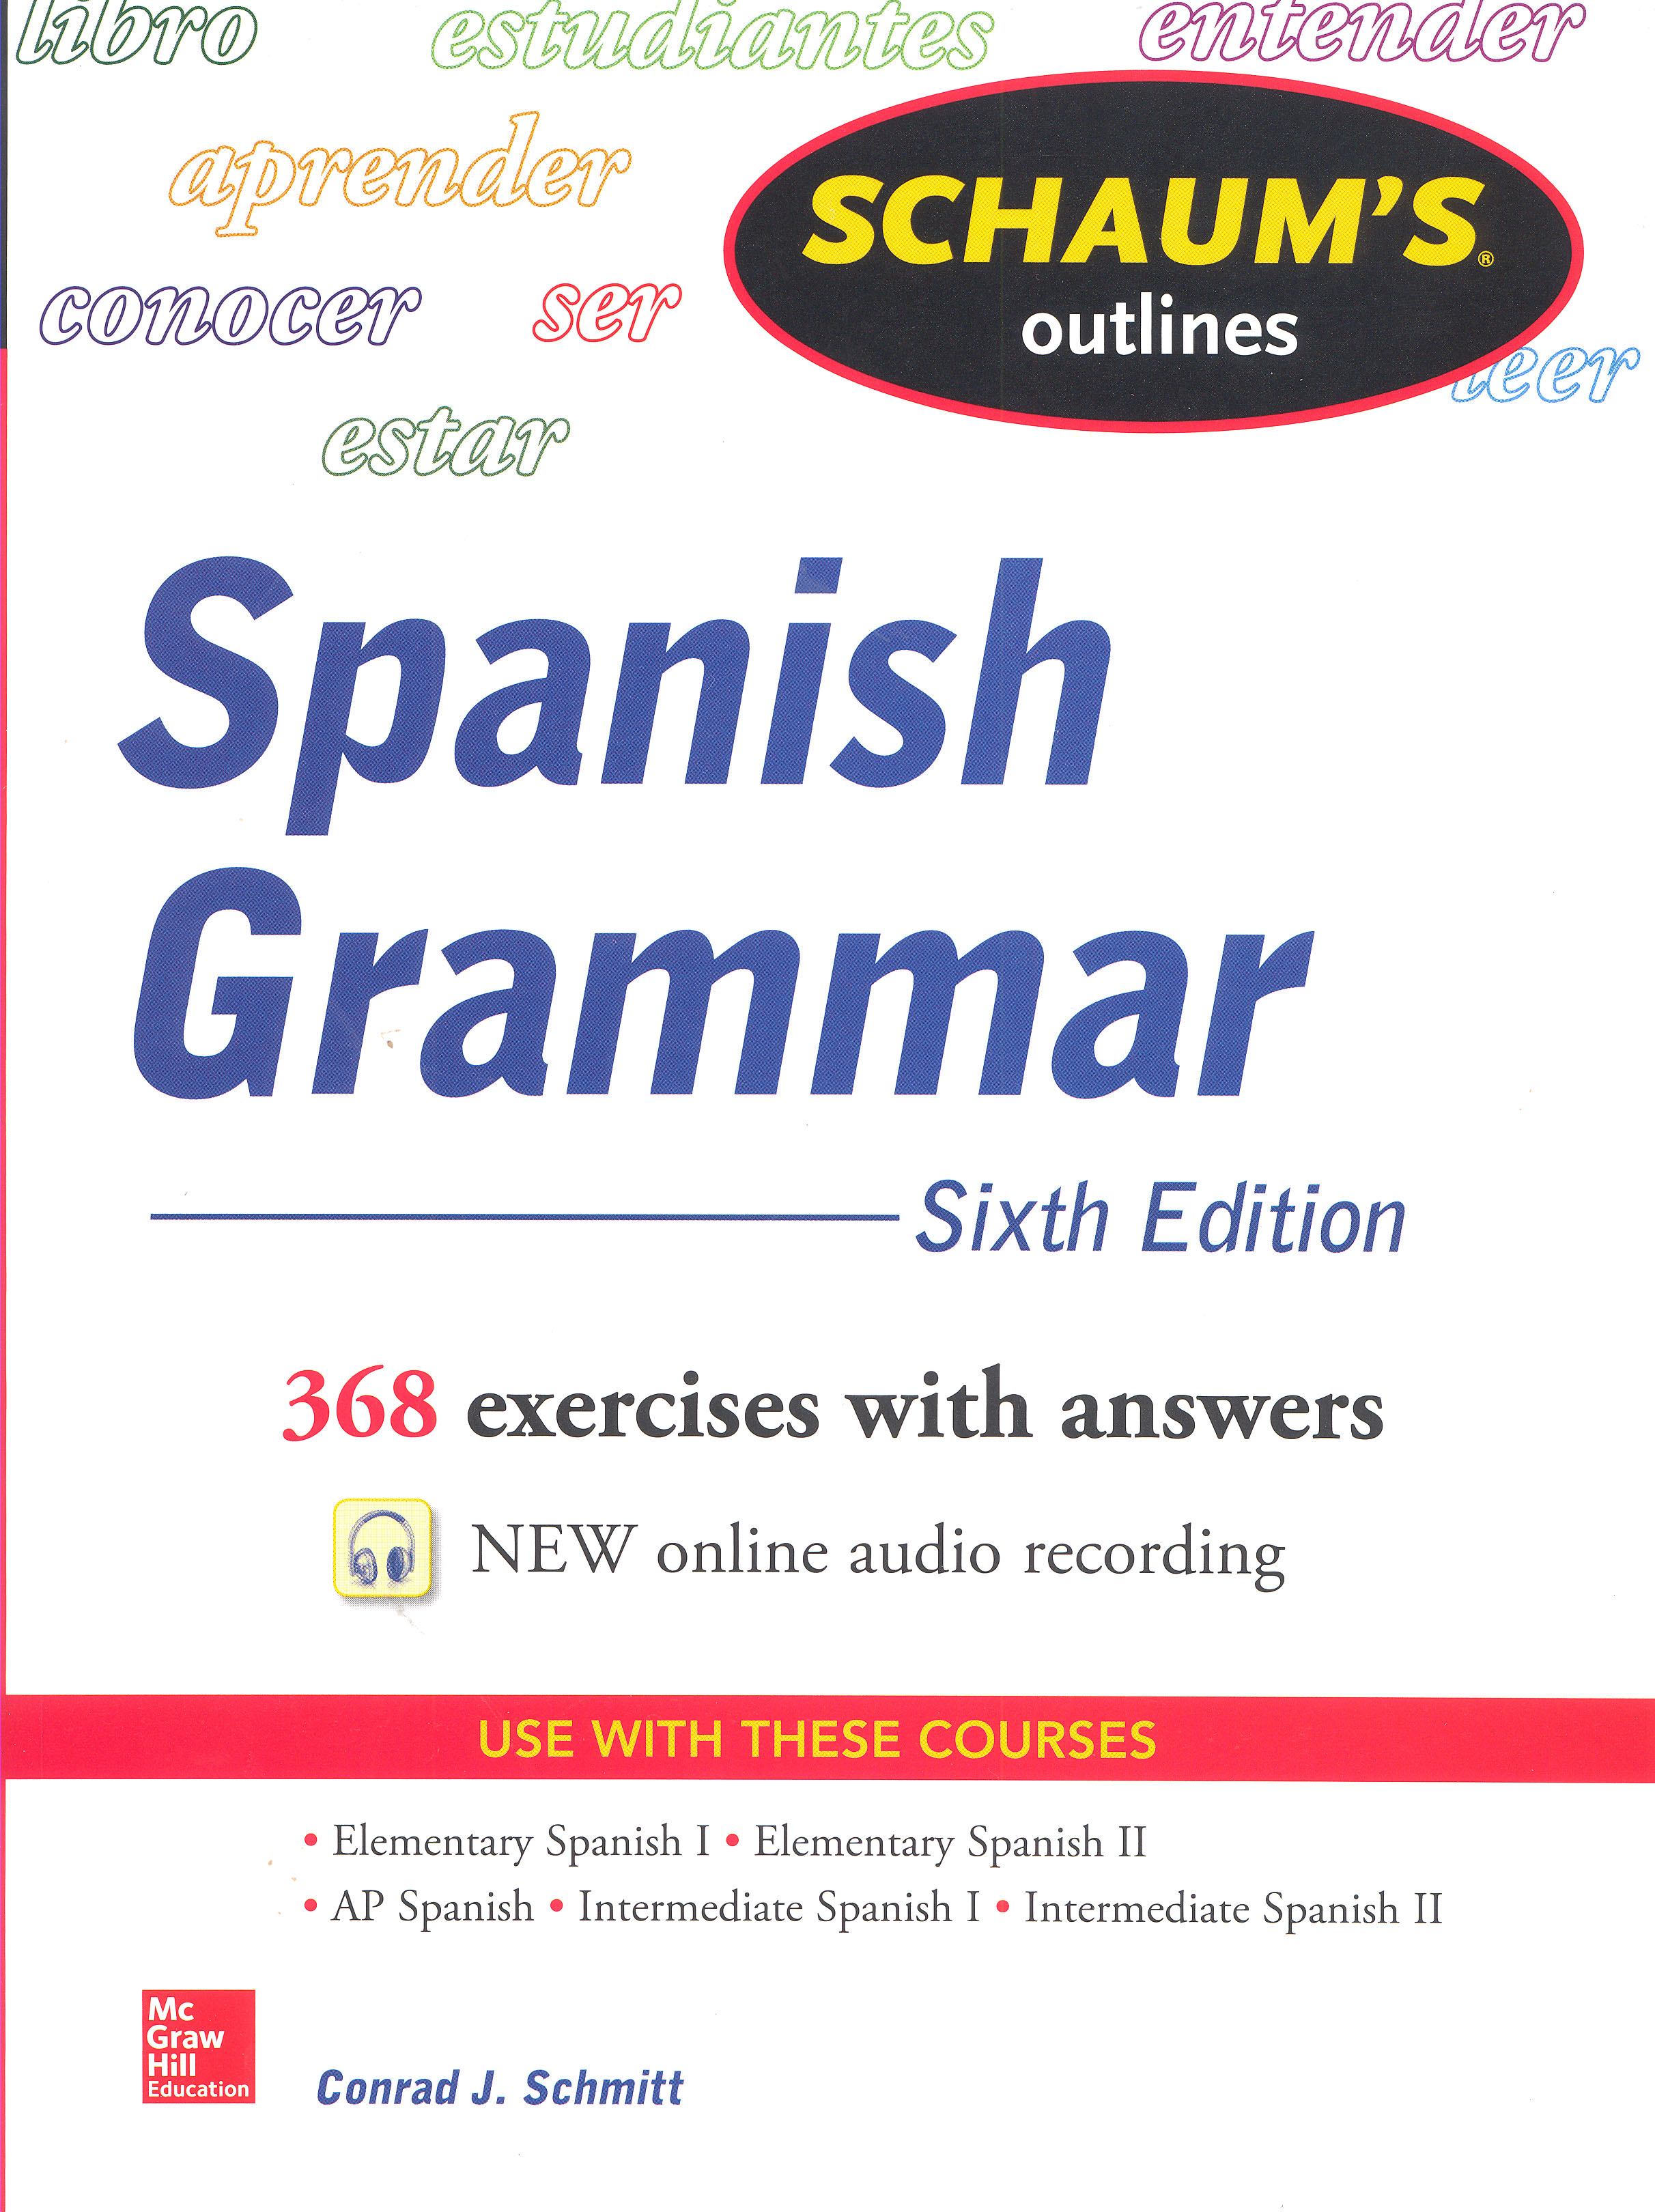 Schaum's Outlines for Spanish Grammar 5th Edition Book